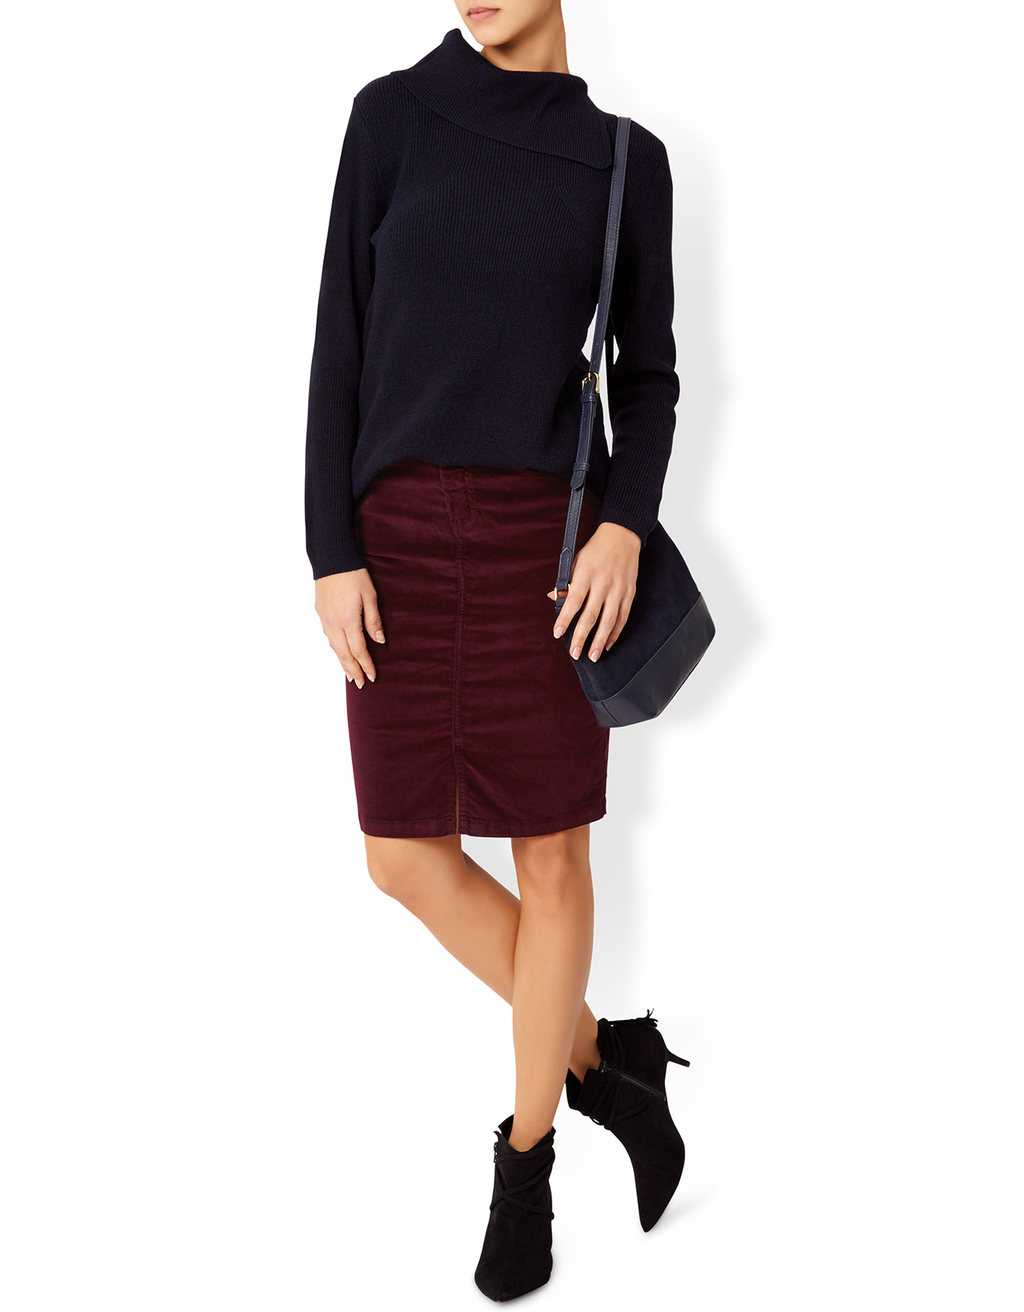 Katya Stretch Short Velvet Skirt - pattern: plain; style: pencil; fit: tailored/fitted; waist: high rise; predominant colour: burgundy; occasions: casual, creative work; length: just above the knee; fibres: polyester/polyamide - 100%; texture group: corduroy; pattern type: fabric; season: a/w 2016; wardrobe: highlight